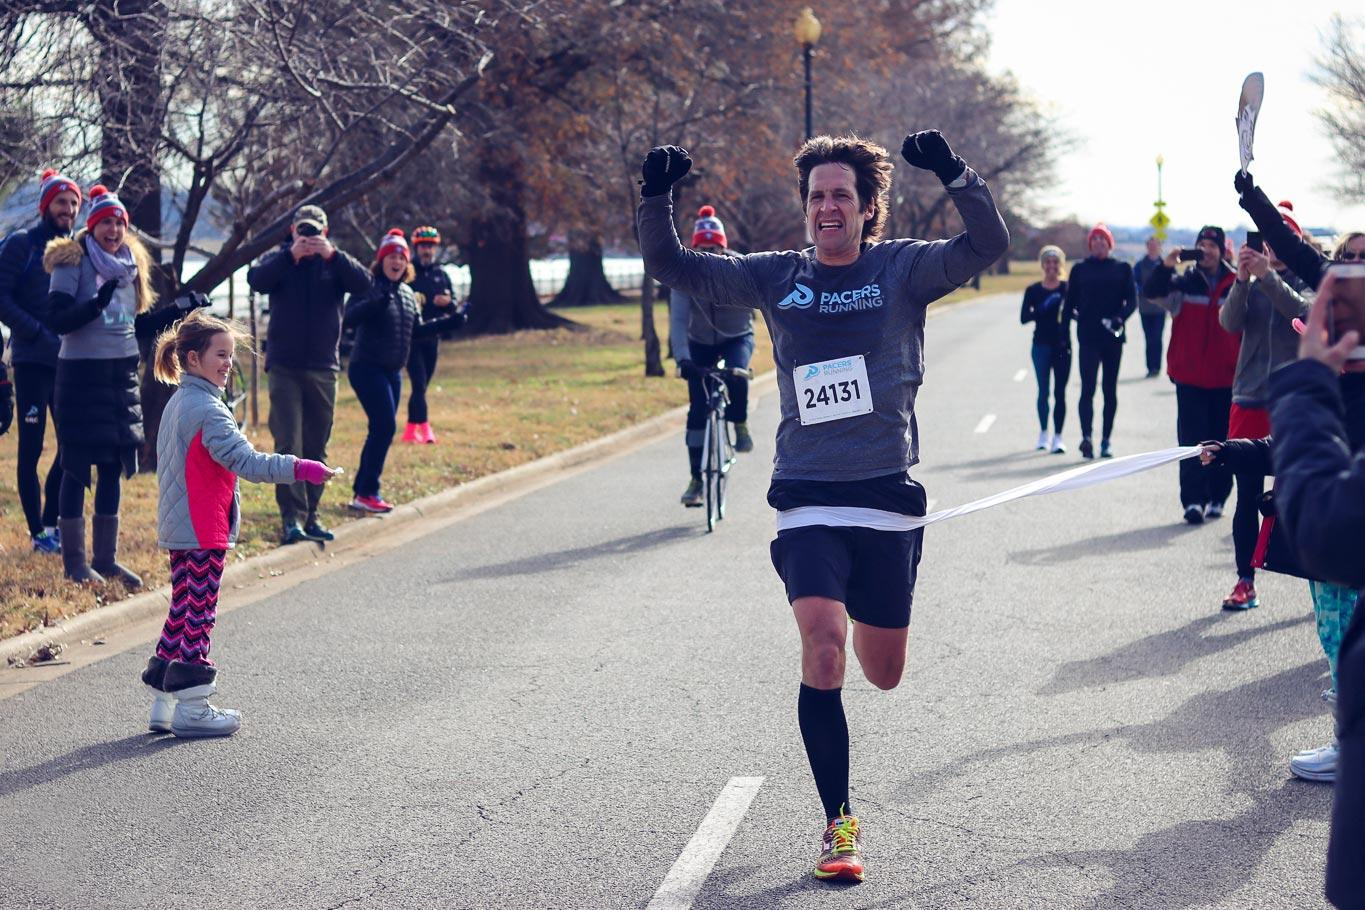 Chris Farley crosses the finish line of a marathon last December that family, friends and employees organized just for him.